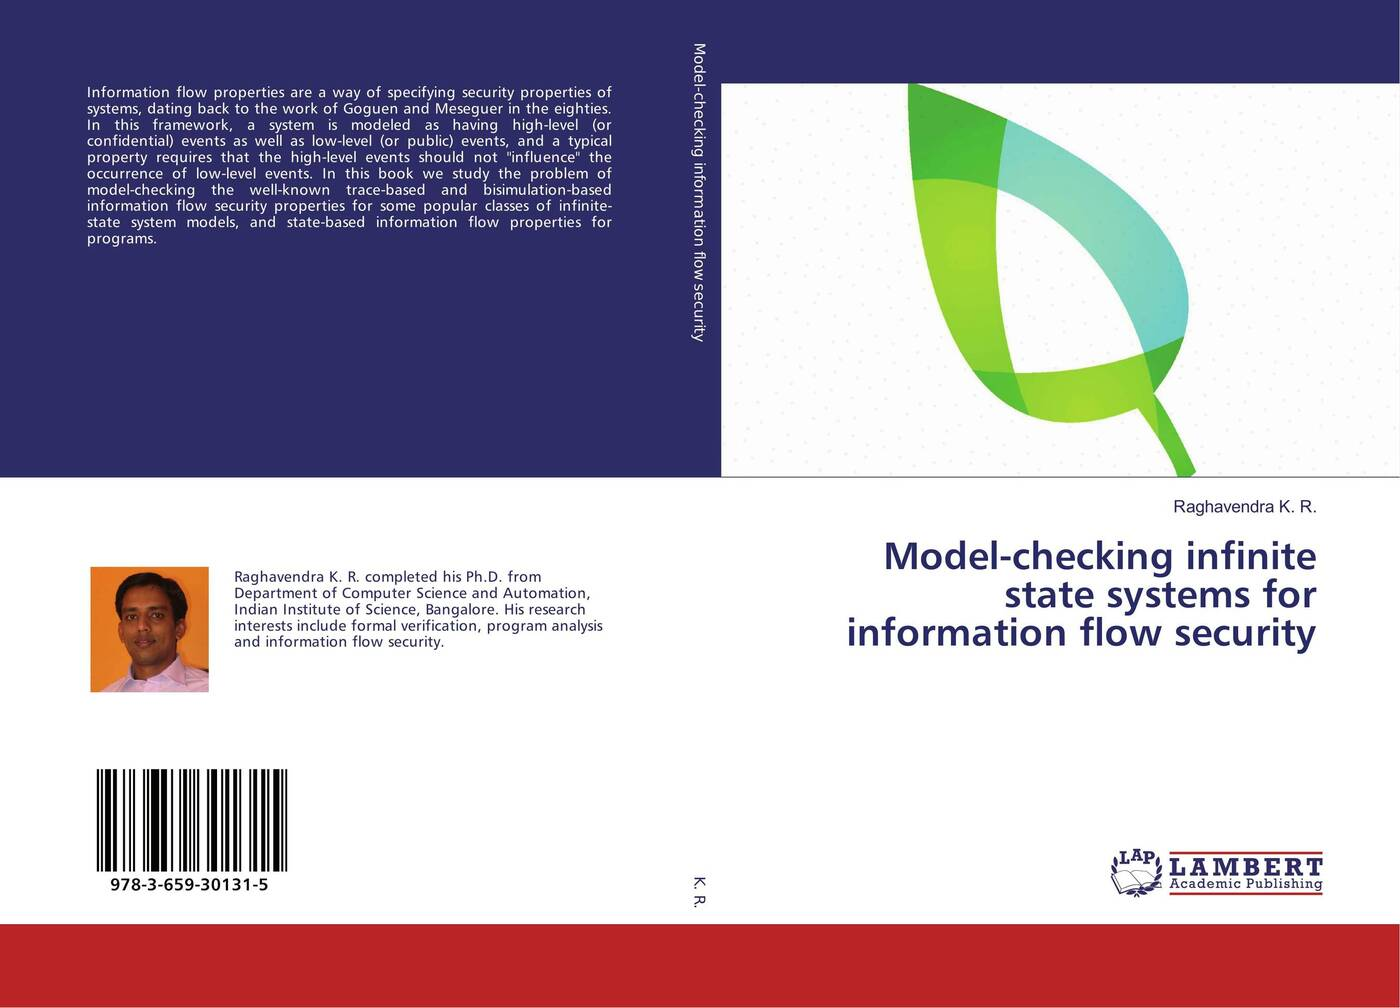 Raghavendra K. R. Model-checking infinite state systems for information flow security